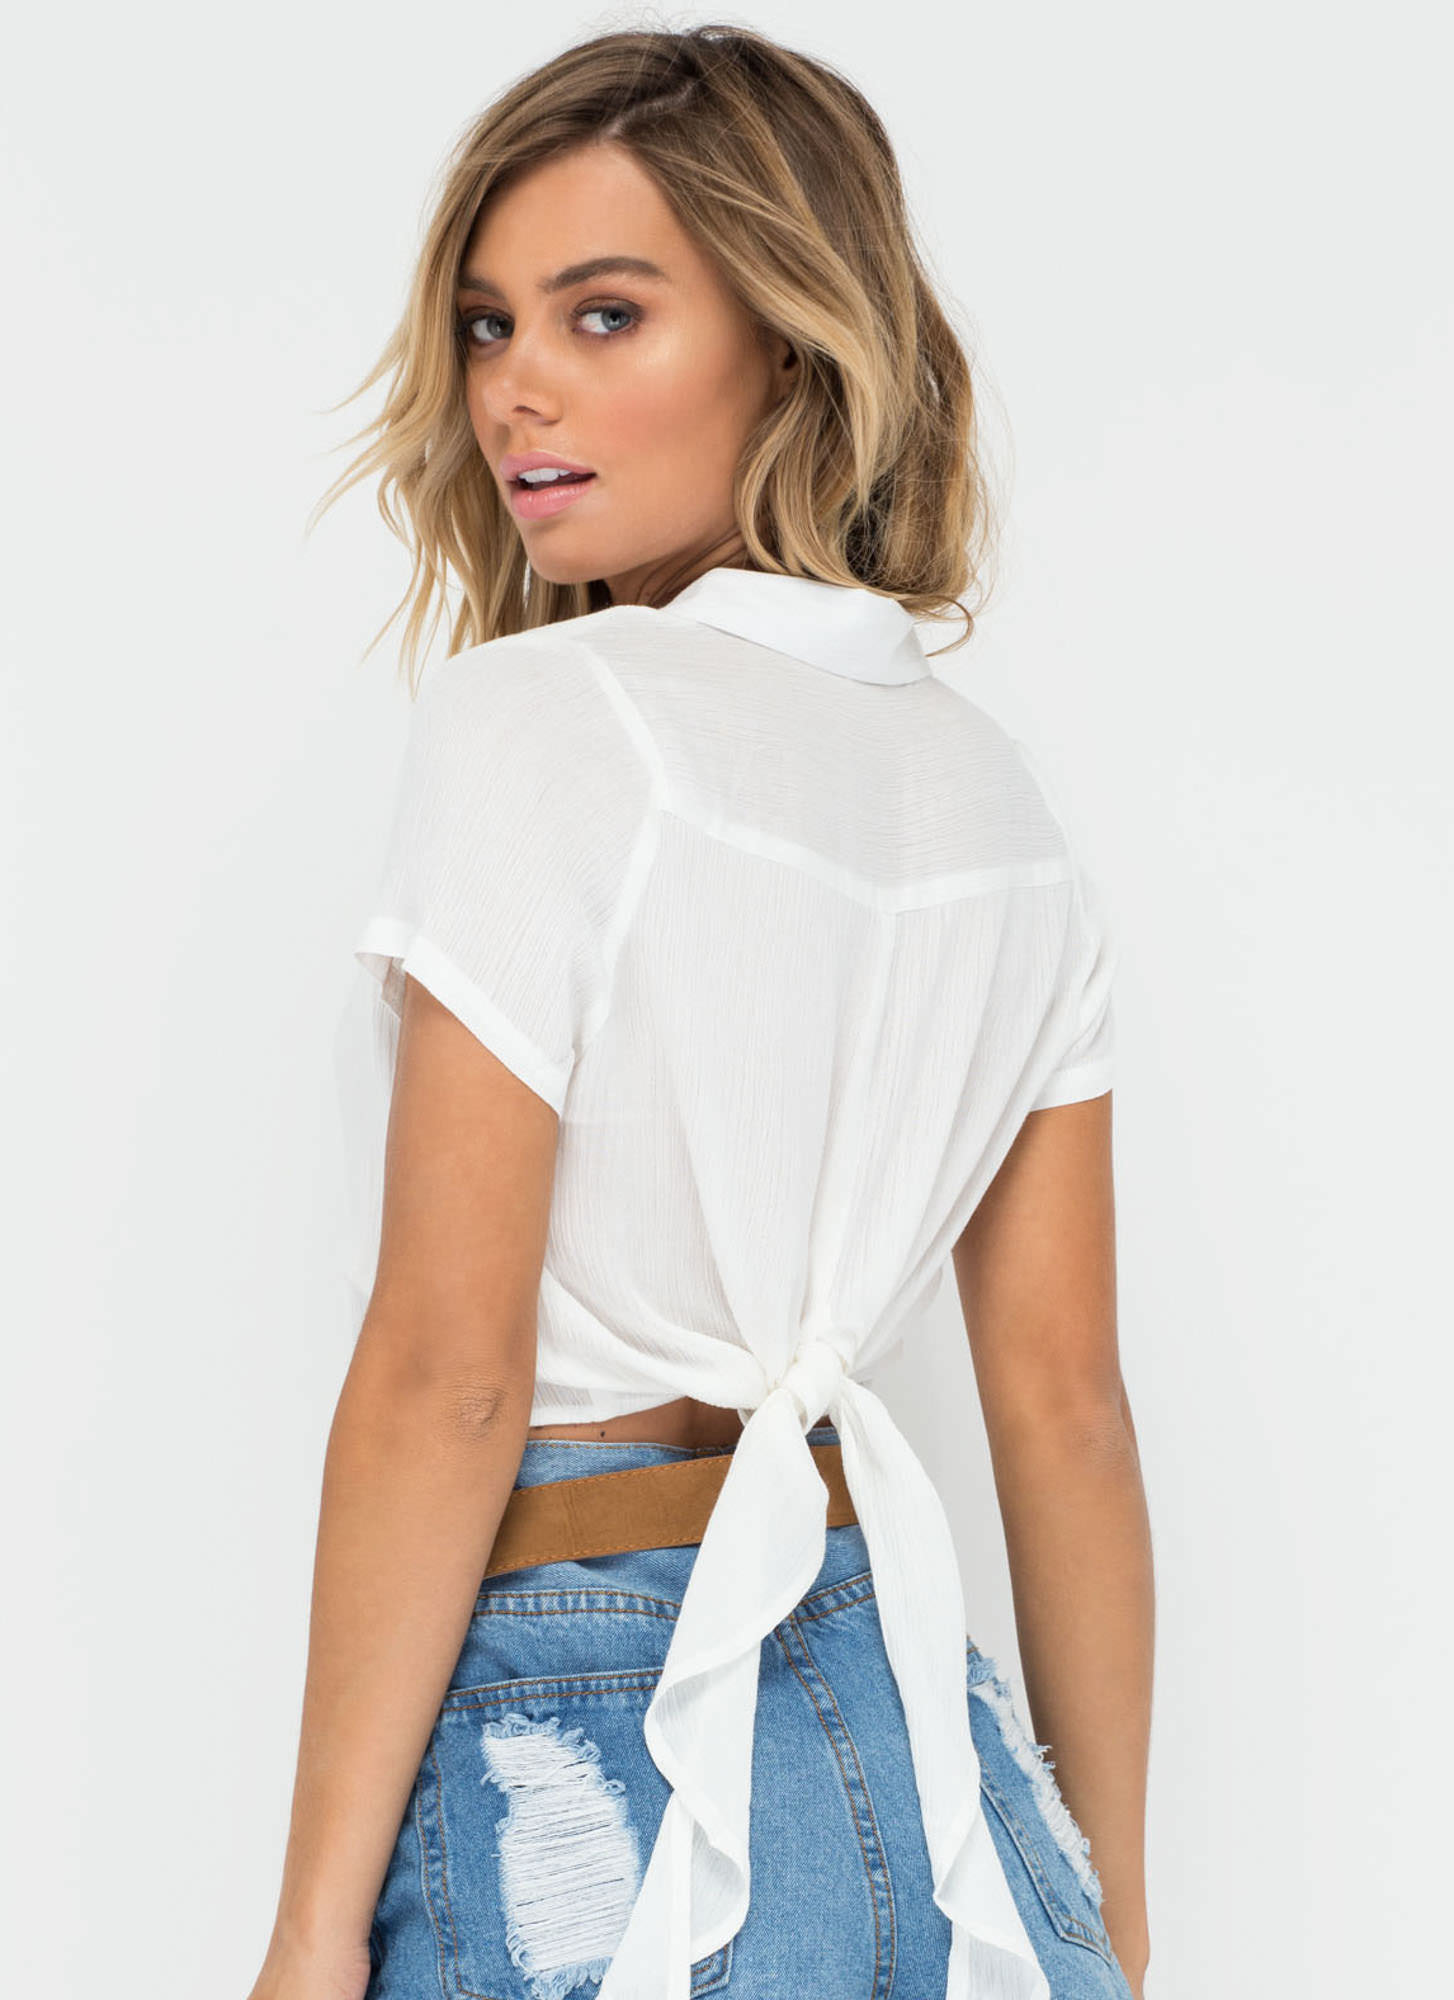 Tied One On Button-Up Crop Top WHITE (Final Sale)